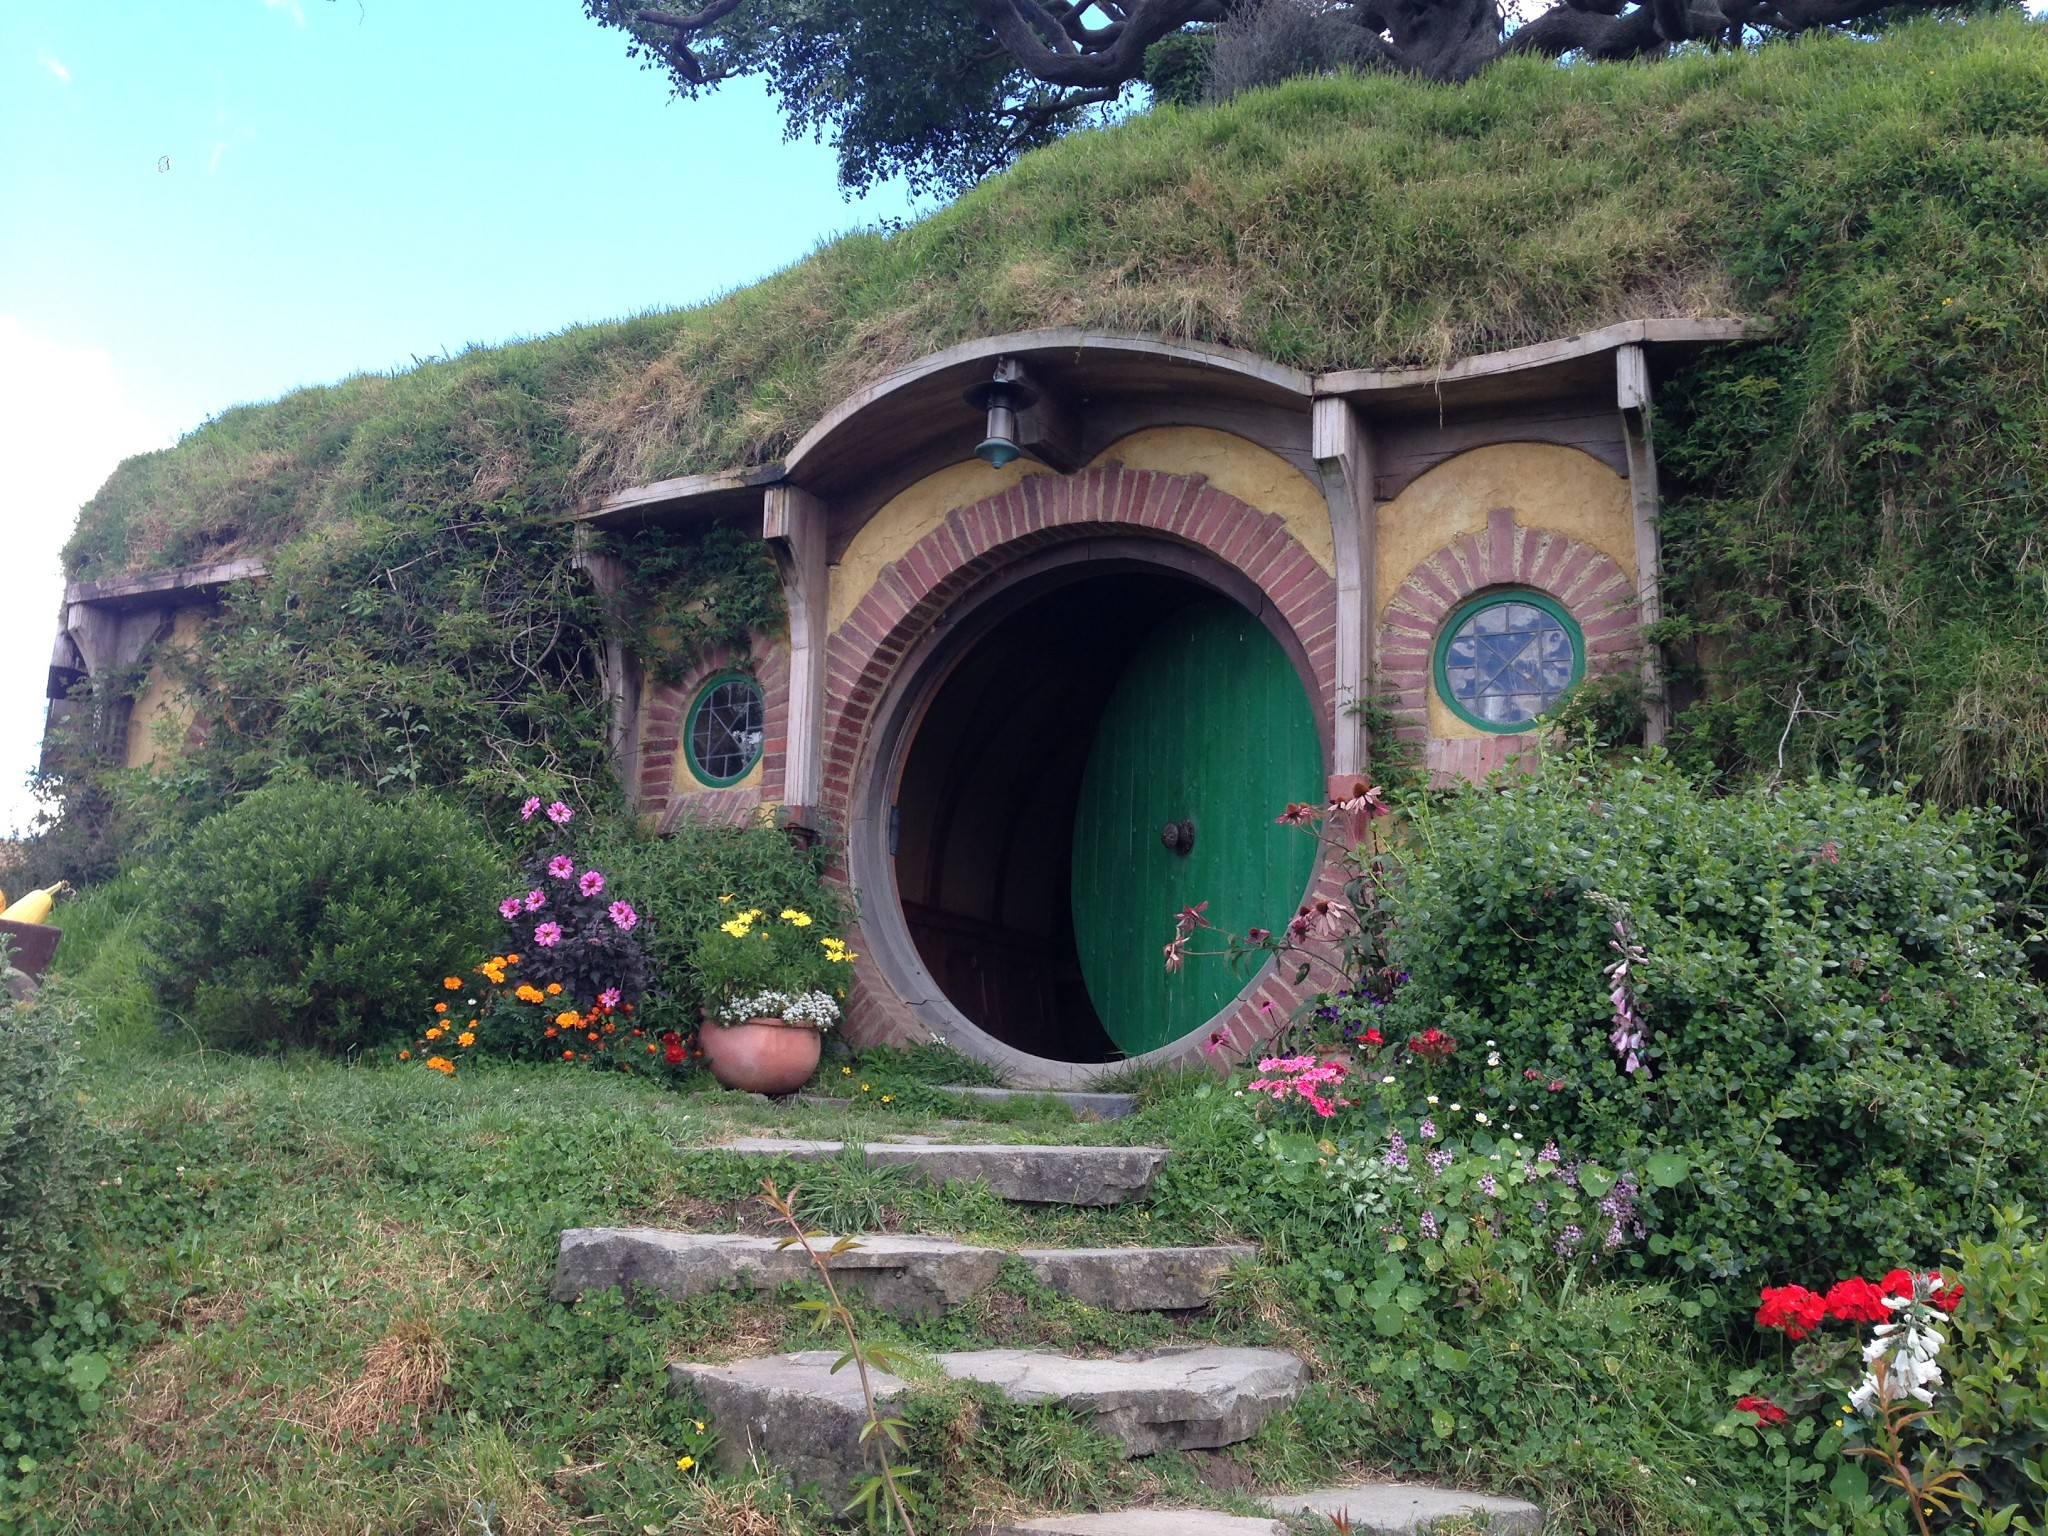 Bilbo's House, Hobbiton, matamata, lord of the rings, New Zealand, film set, north island, hobbit, hobbit hole,